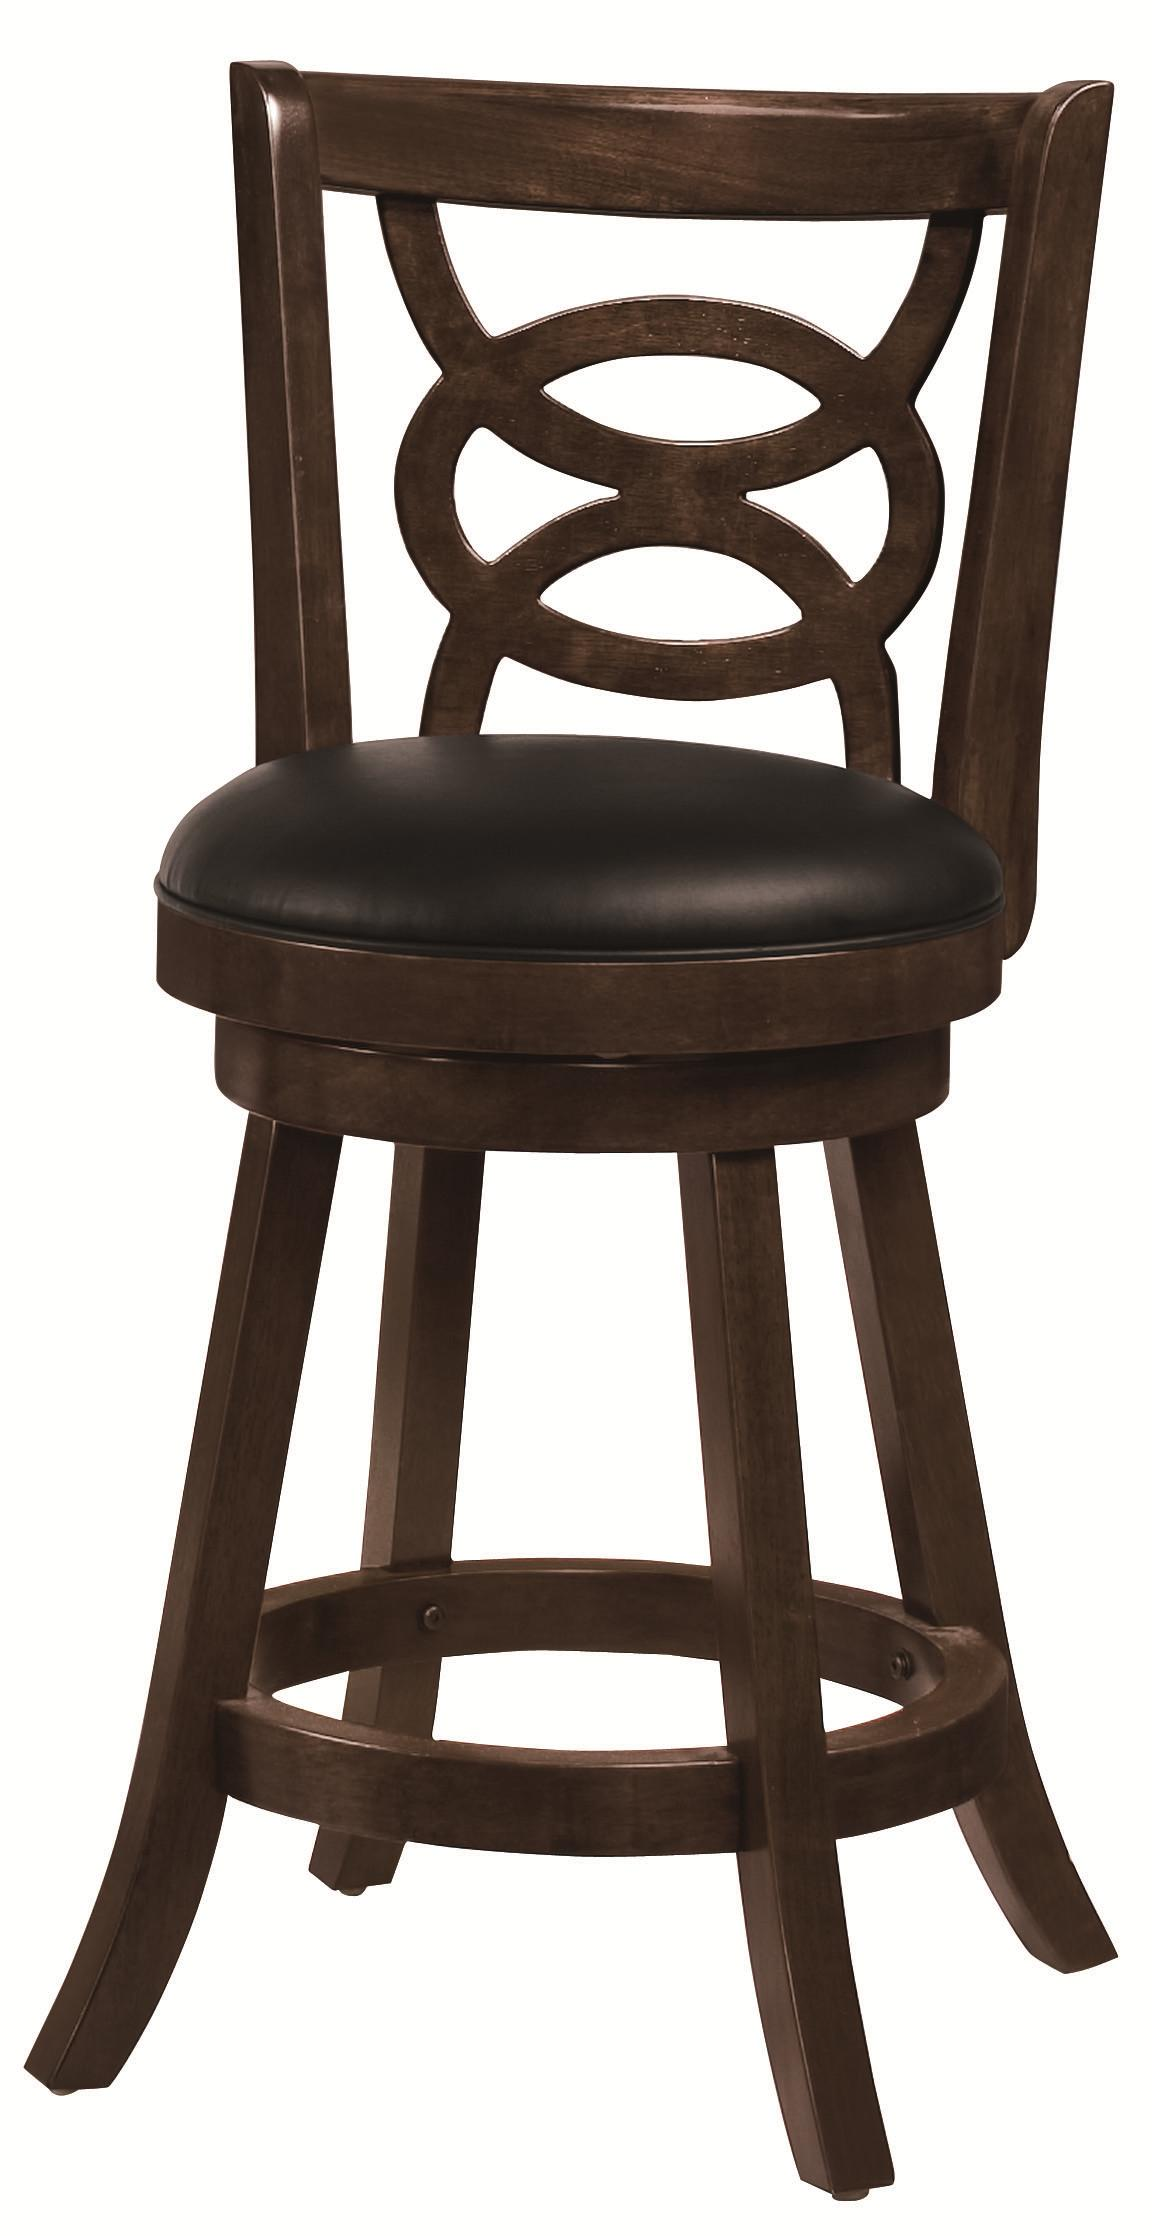 "Dining Chairs and Bar Stools 24"" Swivel Bar Stool with Upholstered Seat by Coaster at Northeast Factory Direct"